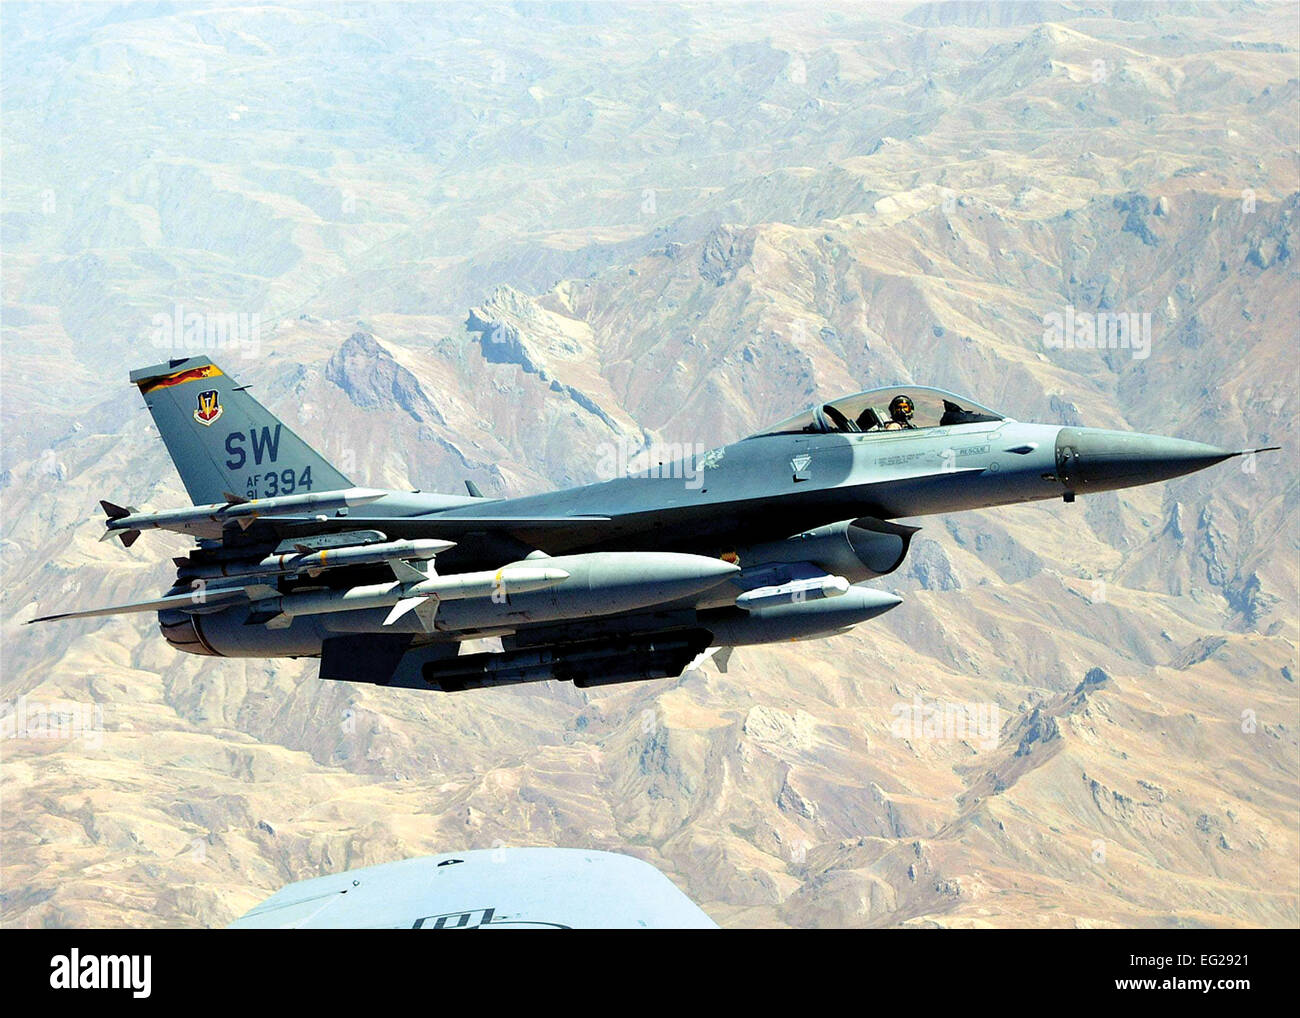 F-16A/B/C/D Fighting Falcon Primary function: Multi-role fighter. Speed: 1,500 mph. Dimensions: Wingspan 32 ft. - Stock Image